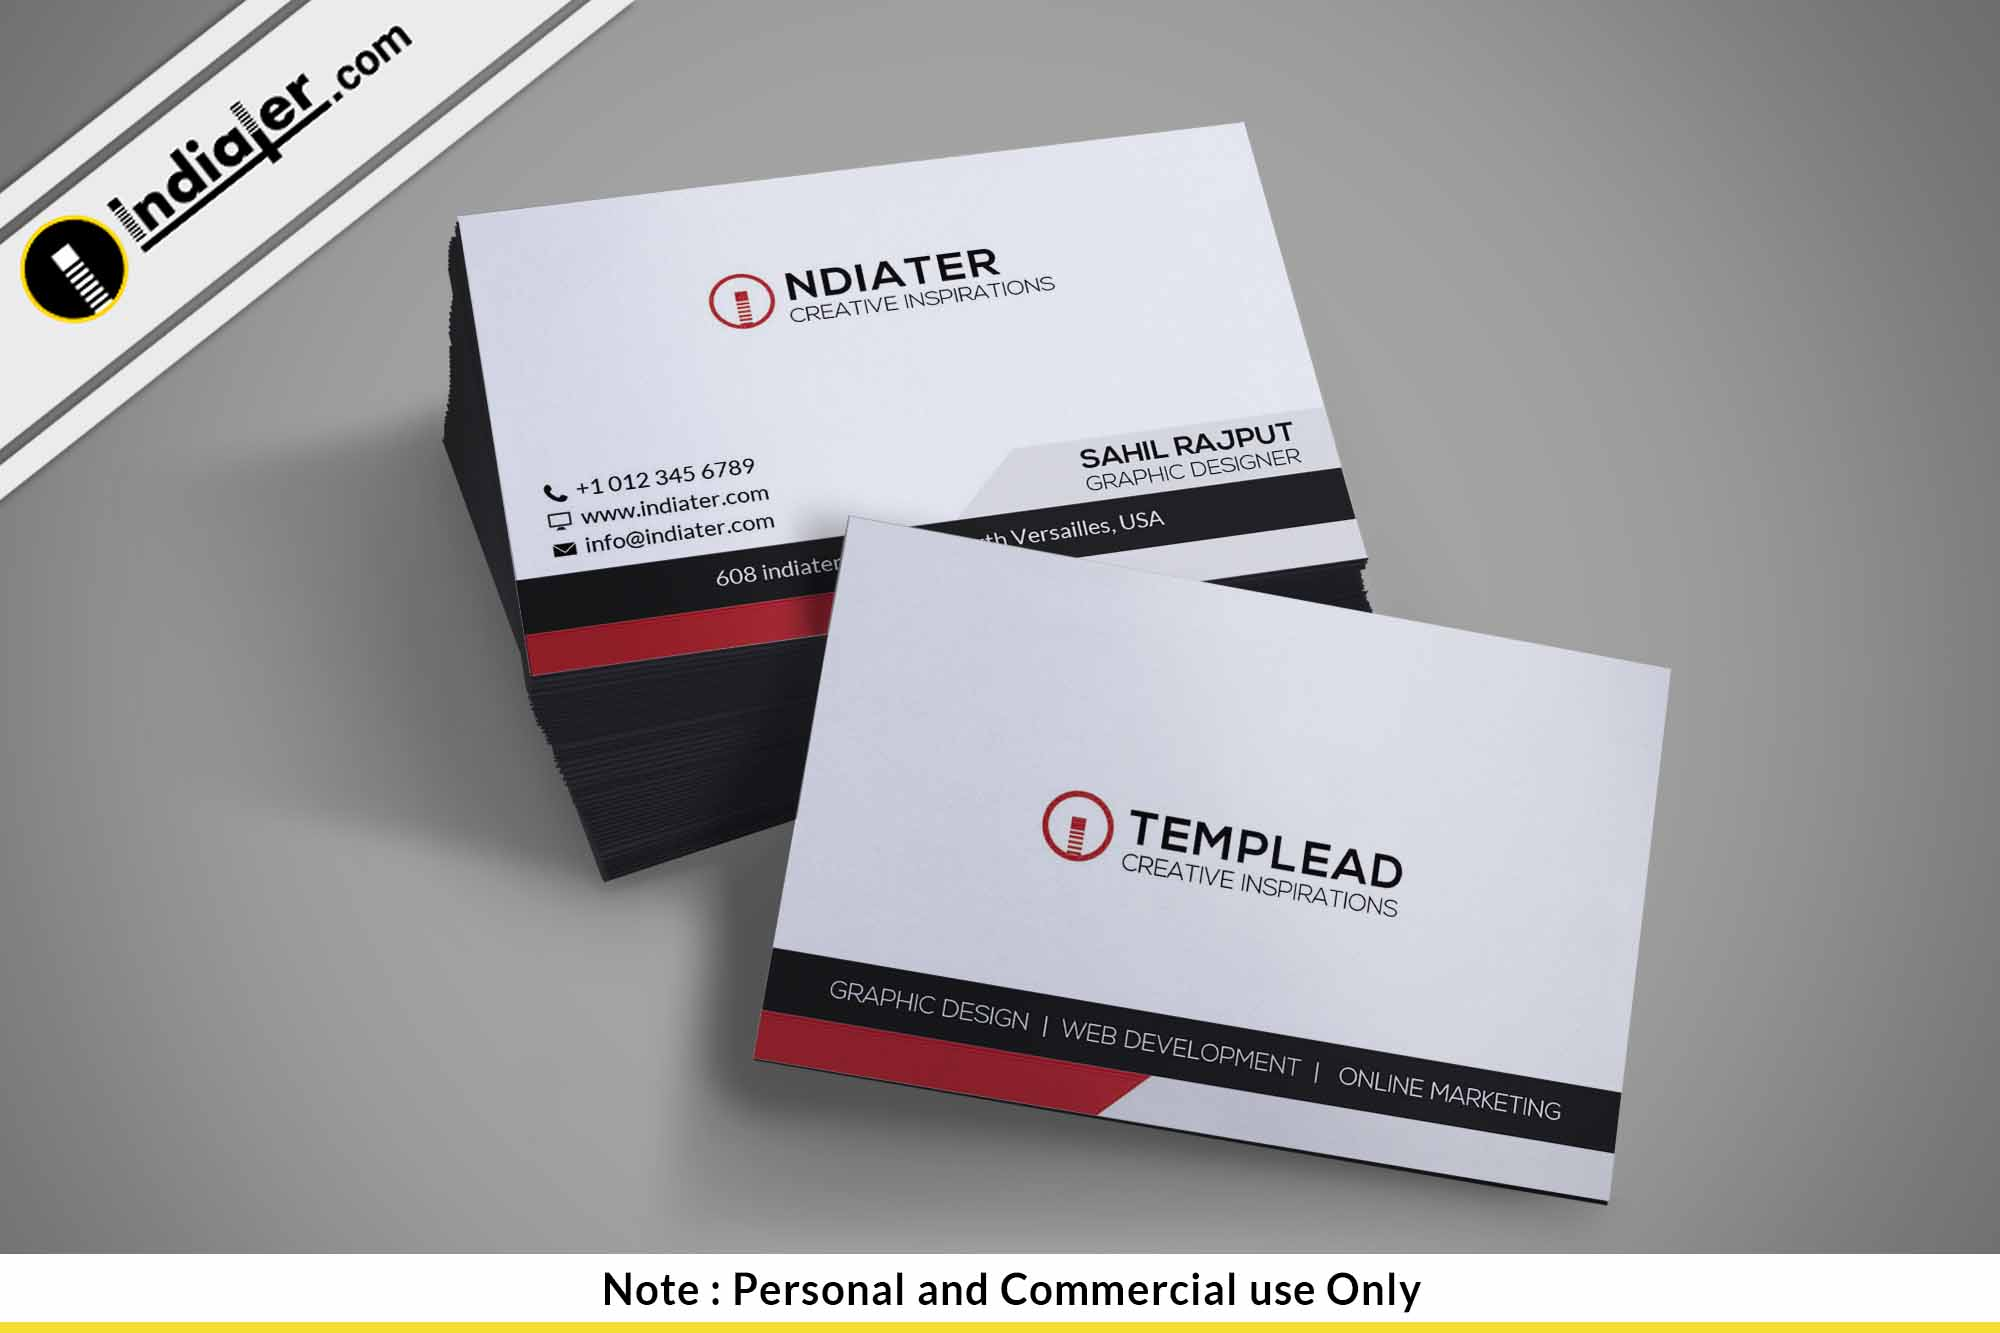 professional business cards psd template indiater. Black Bedroom Furniture Sets. Home Design Ideas